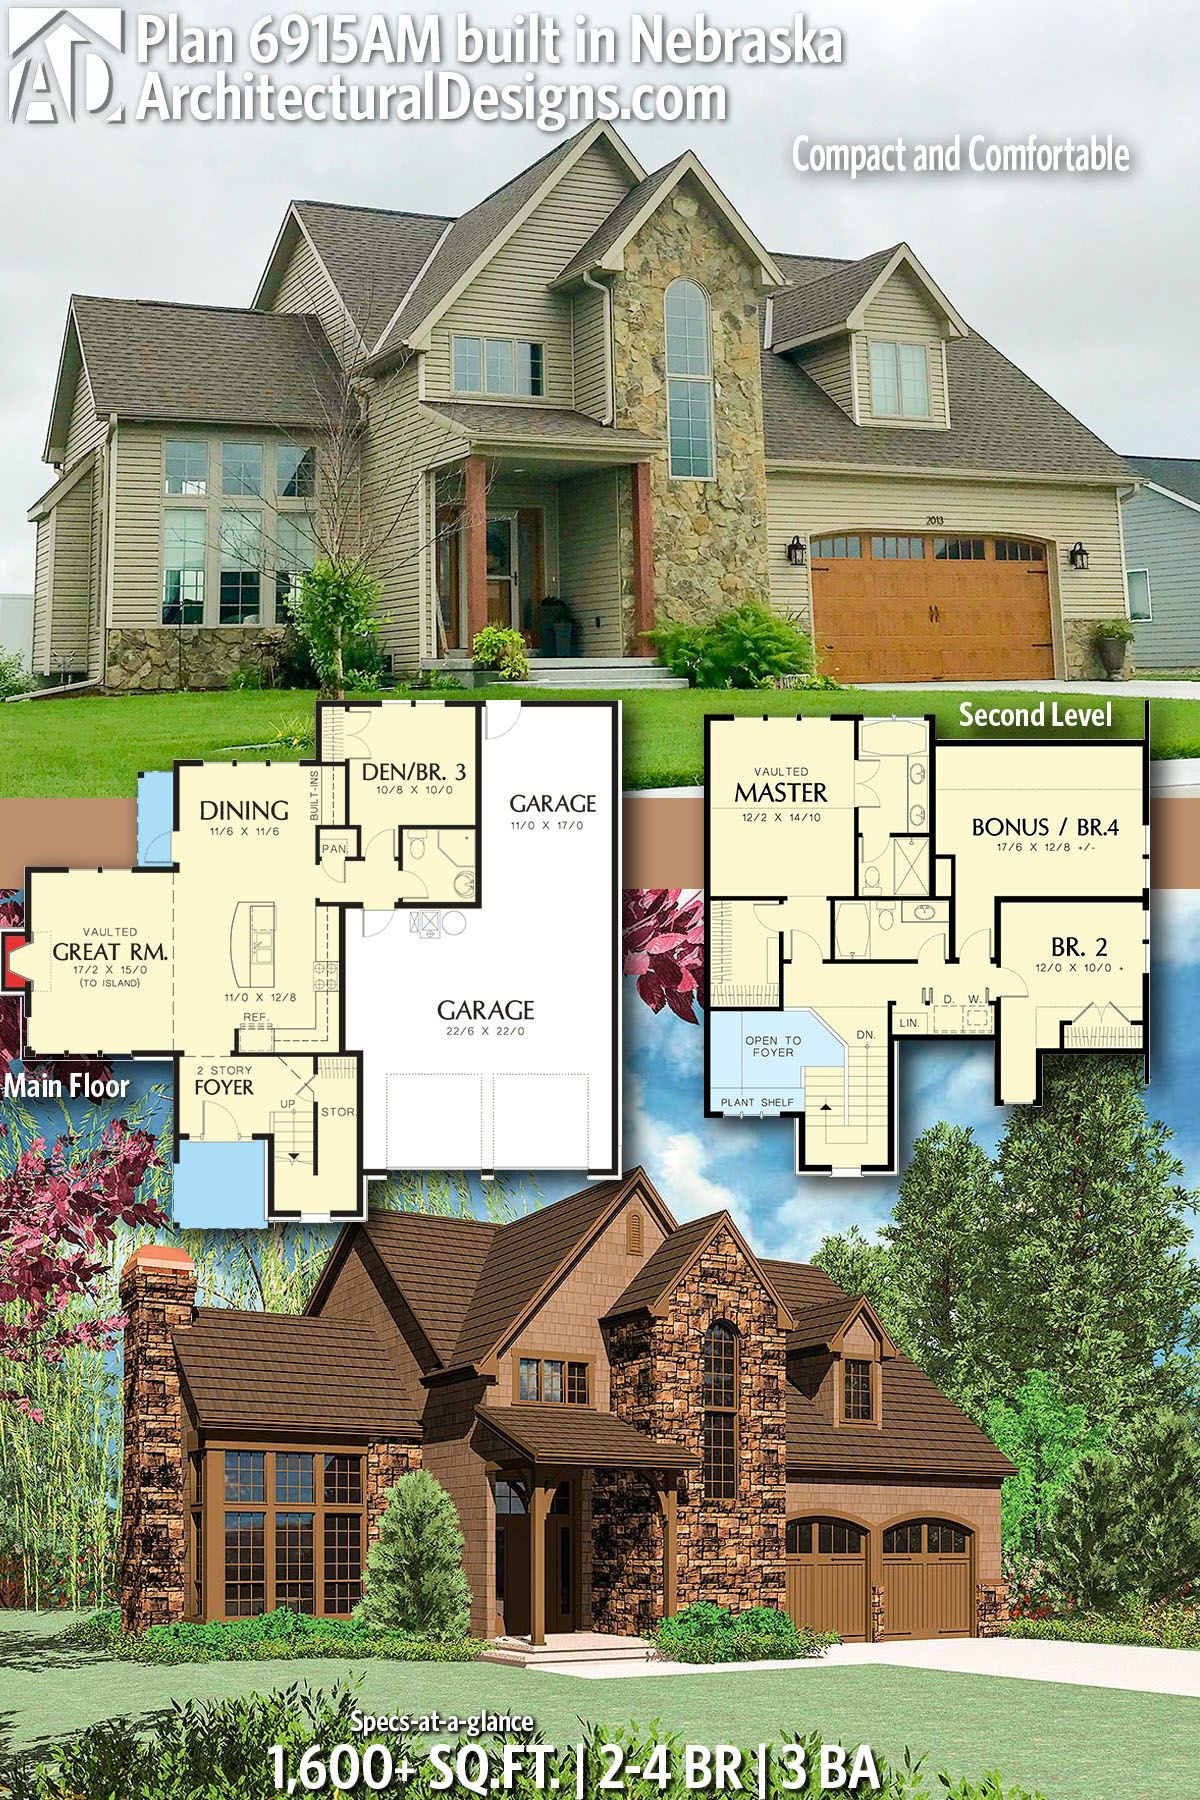 Plan 6915am Compact And Comfortable Architectural Design House Plans Sims House Plans House Floor Plans